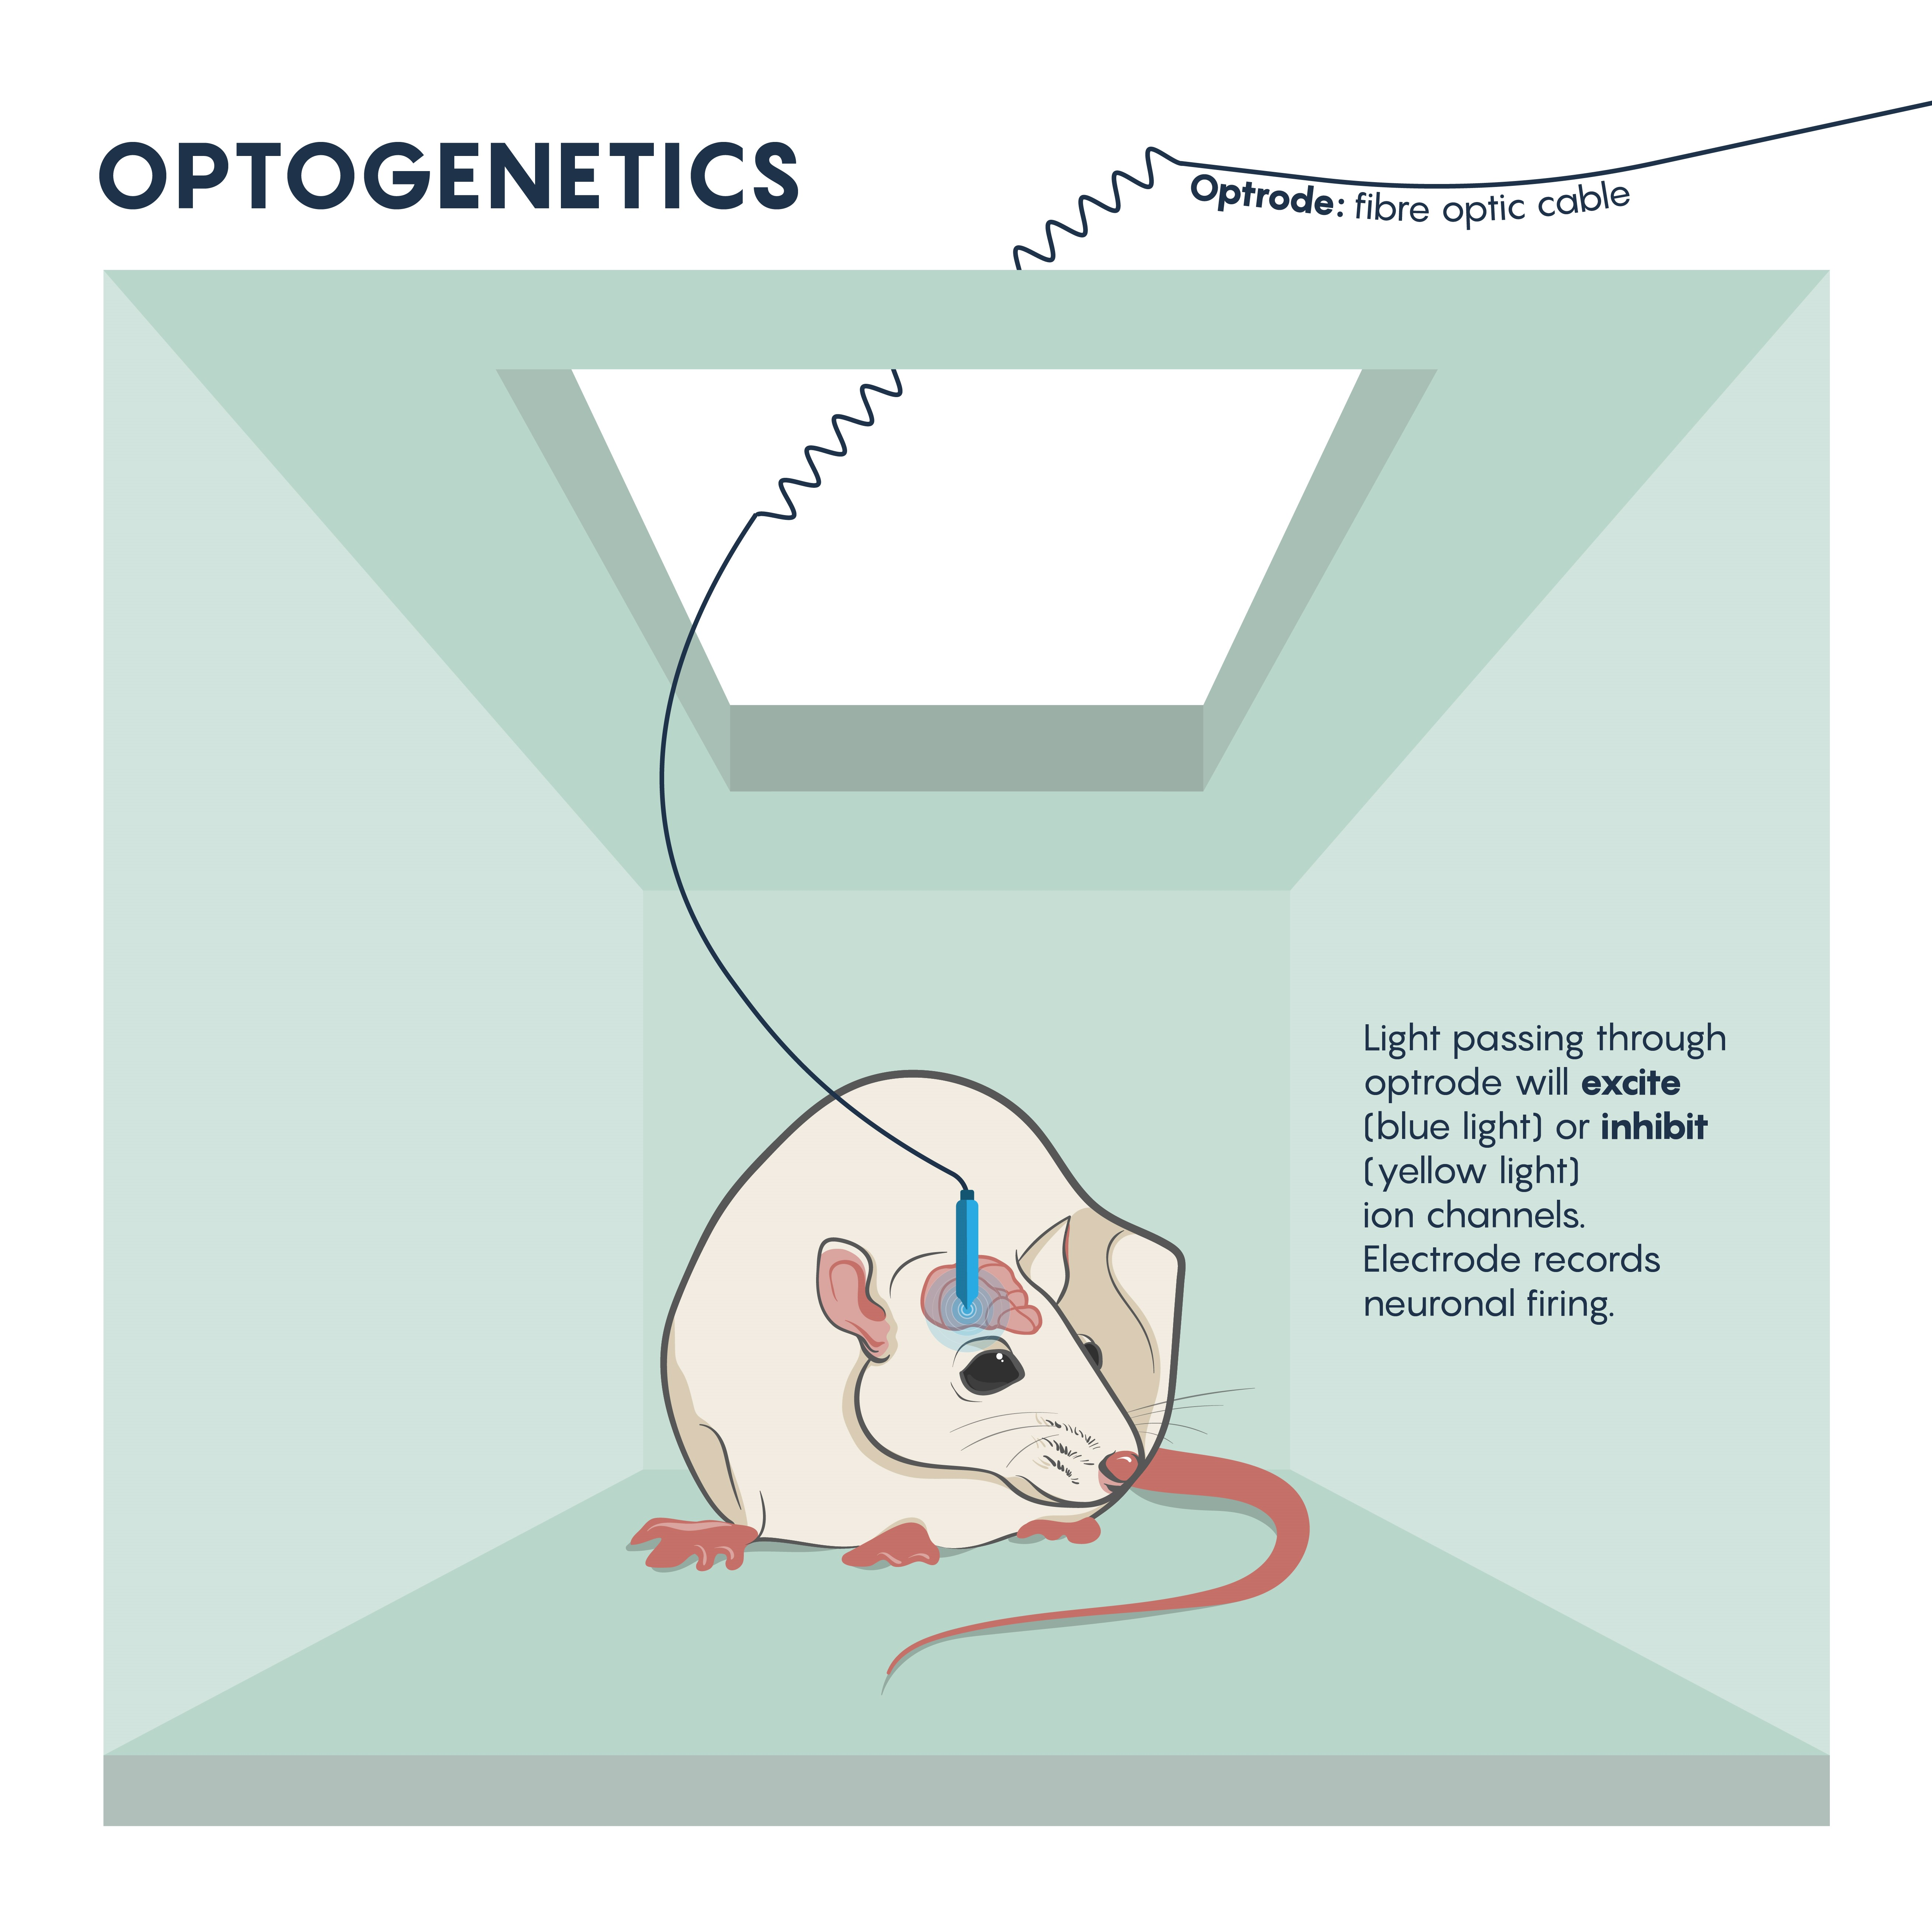 The beginnings of brain circuit studies in mice using optrodes to excite or inhibit ion channels.